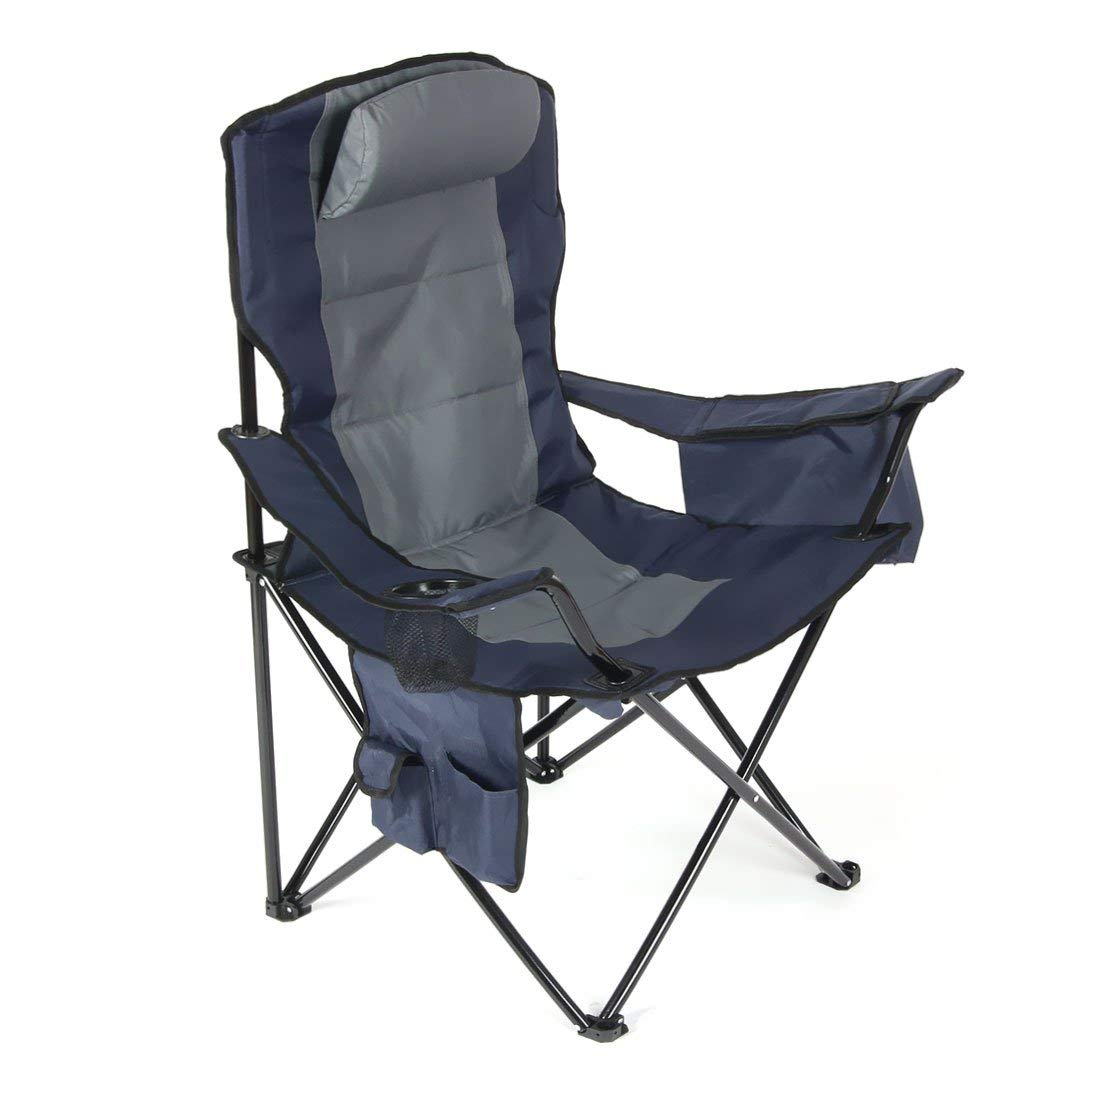 HOMSPORT Outdoor Ultimate Fishing Chair